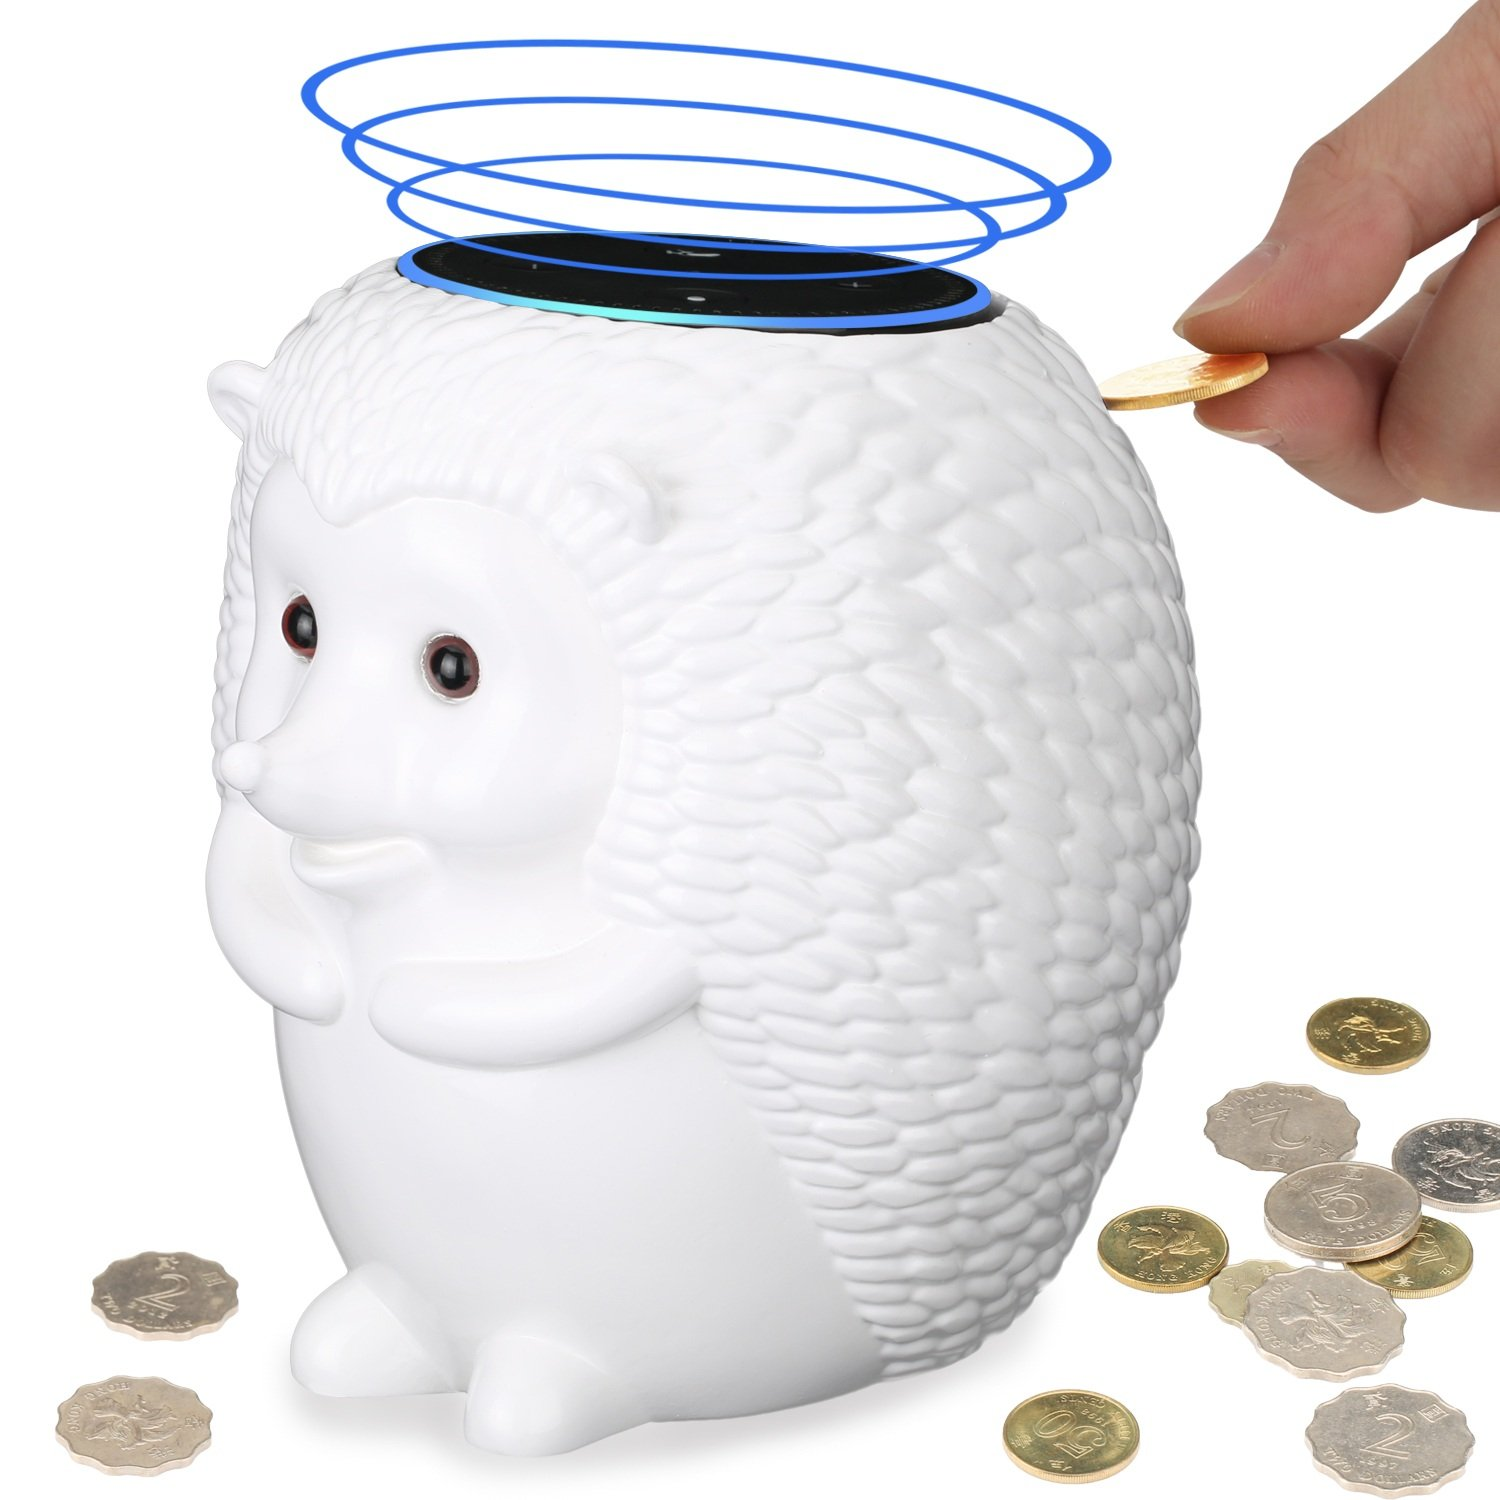 CASECRET Crafted Hedgehog Statue Guard Station Stand Holder with Coin Collection Savings Bank Function for Echo Dot - Alexa Echo Dot Stands